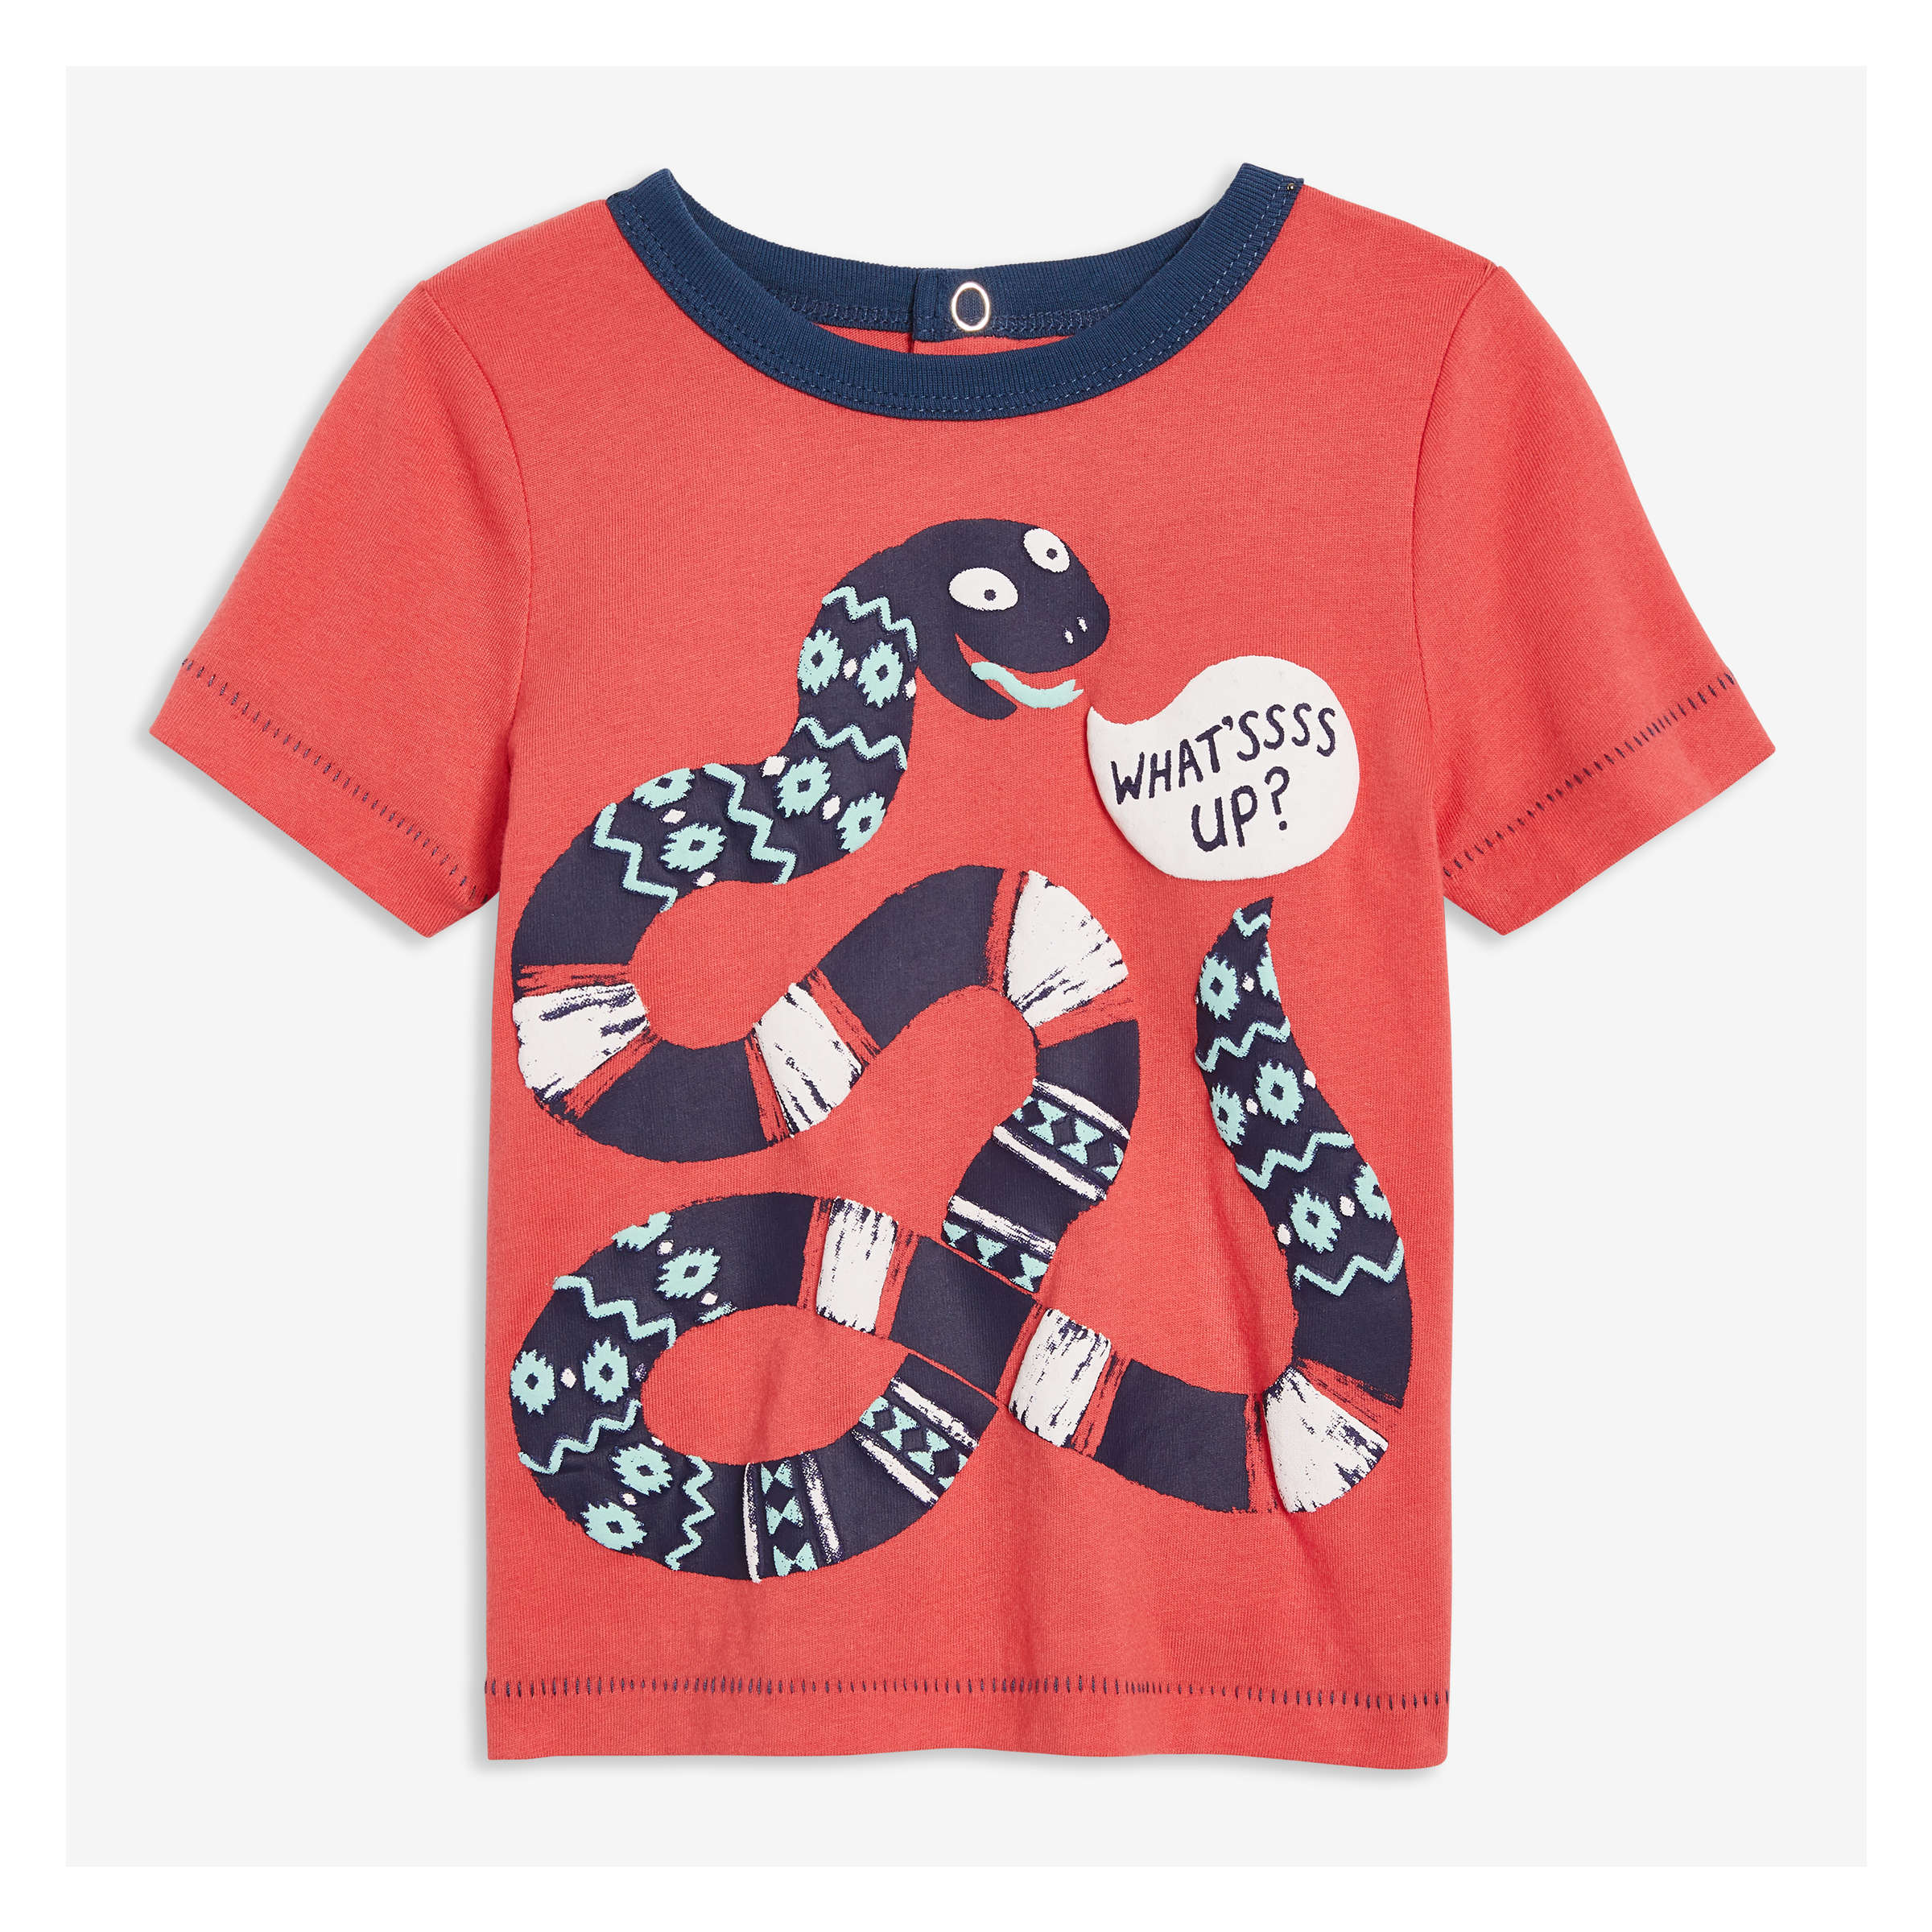 d9ababc267a24 Baby Boys' Short Sleeve Graphic Tee in Coral from Joe Fresh